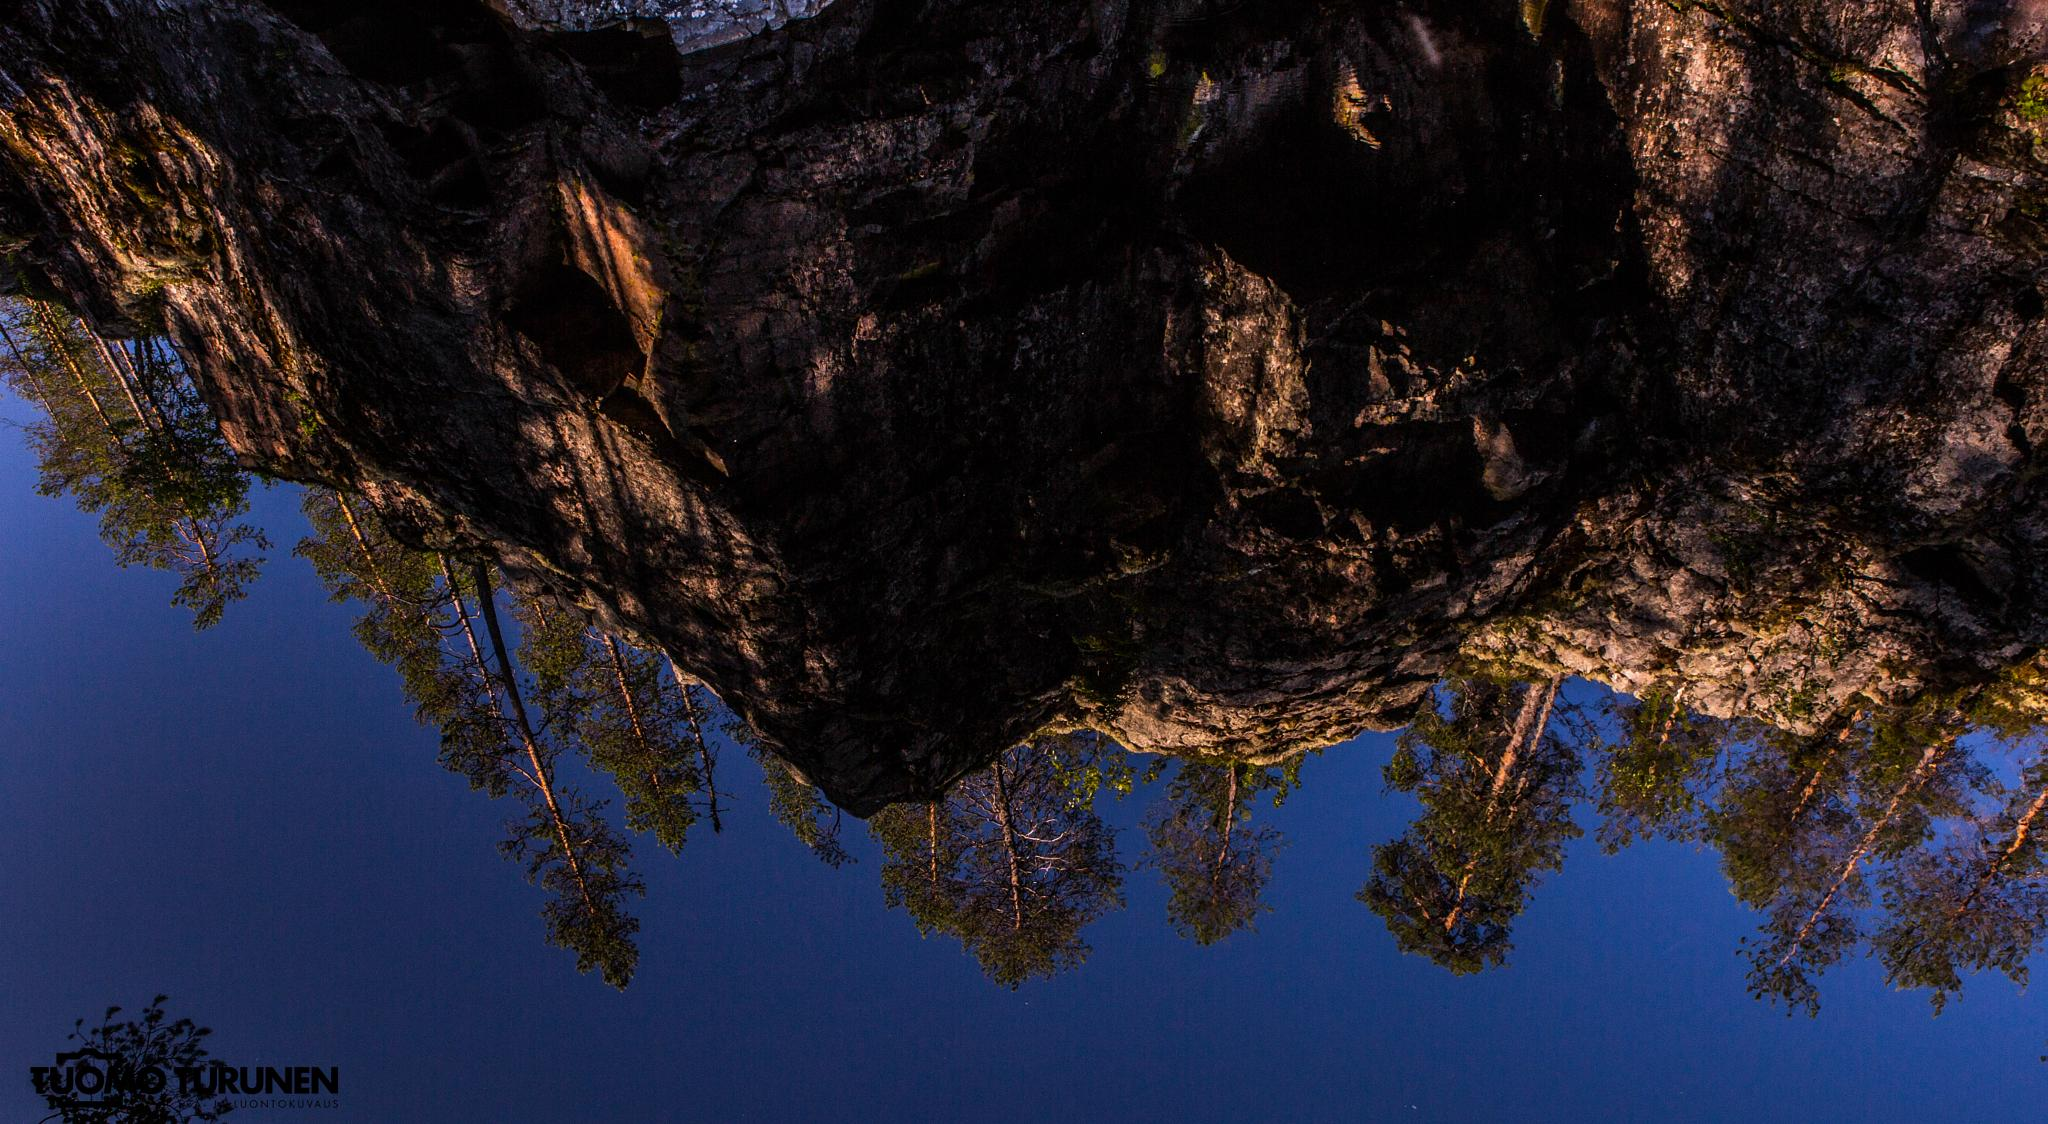 Reflection in the water by Tuomo Turunen